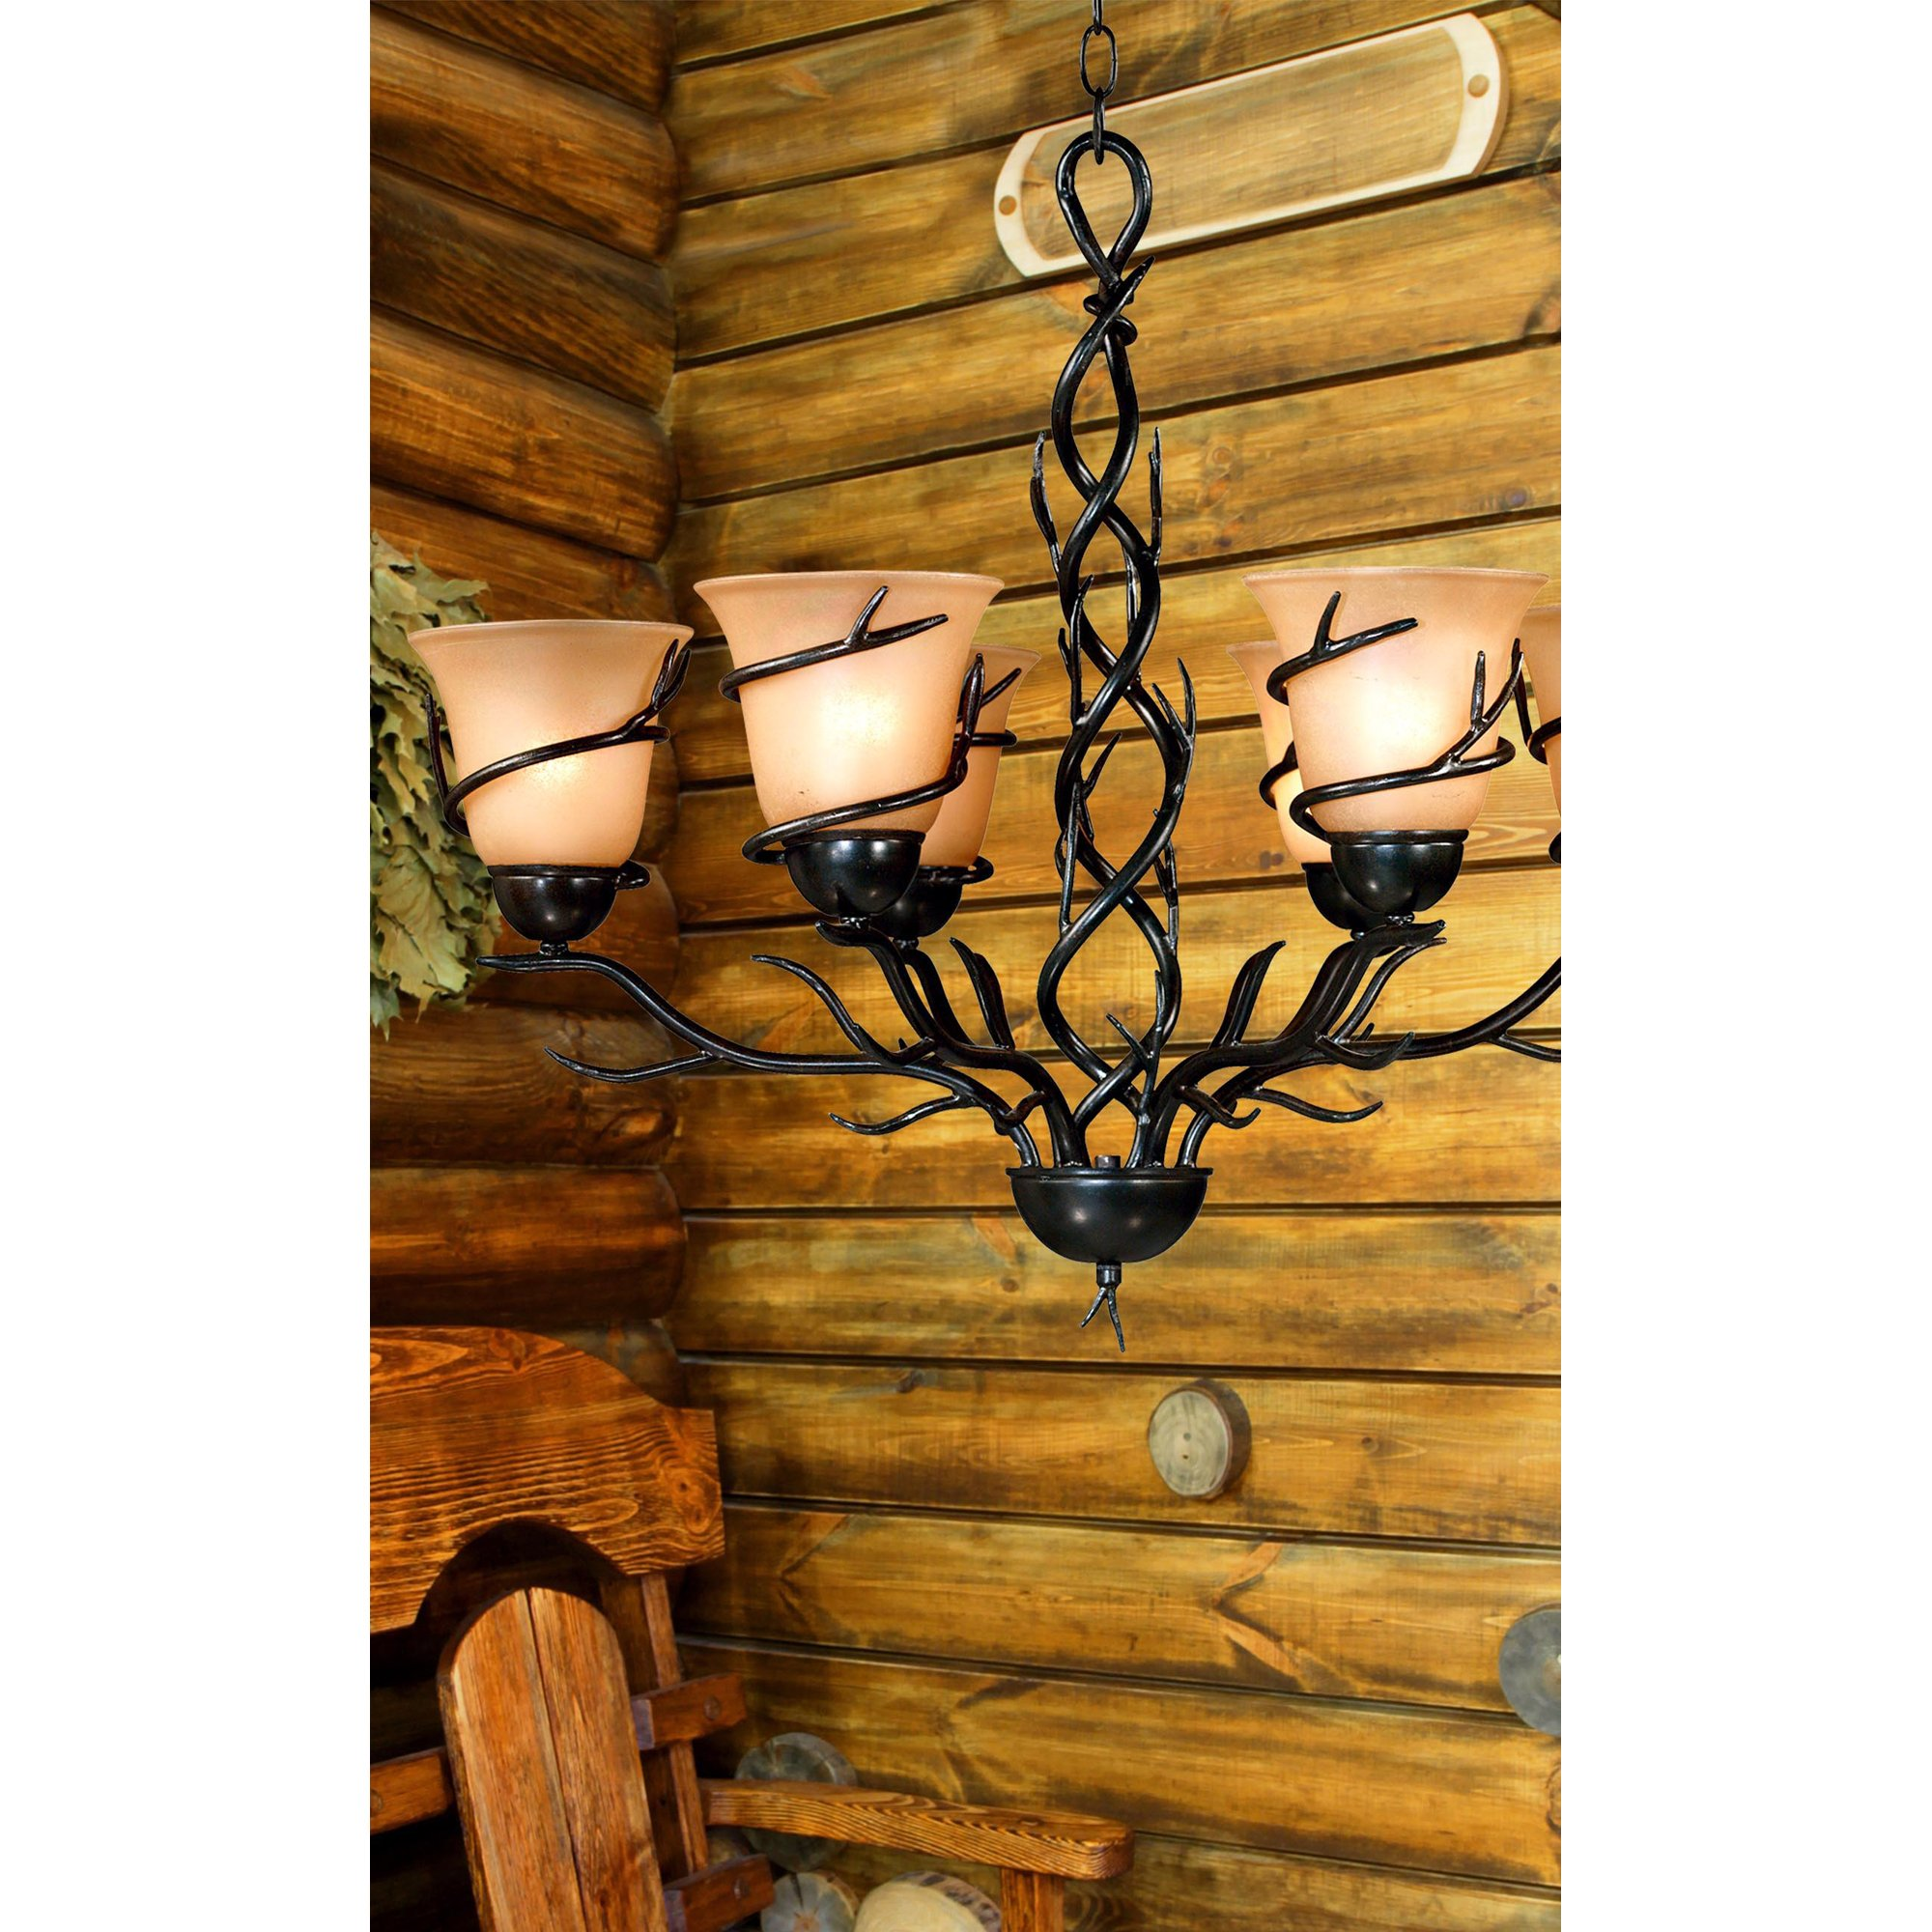 Kenroy Home 90900BRZ  Twigs 6-Light Chandelier, Blackened Bronze Finish by Kenroy Home